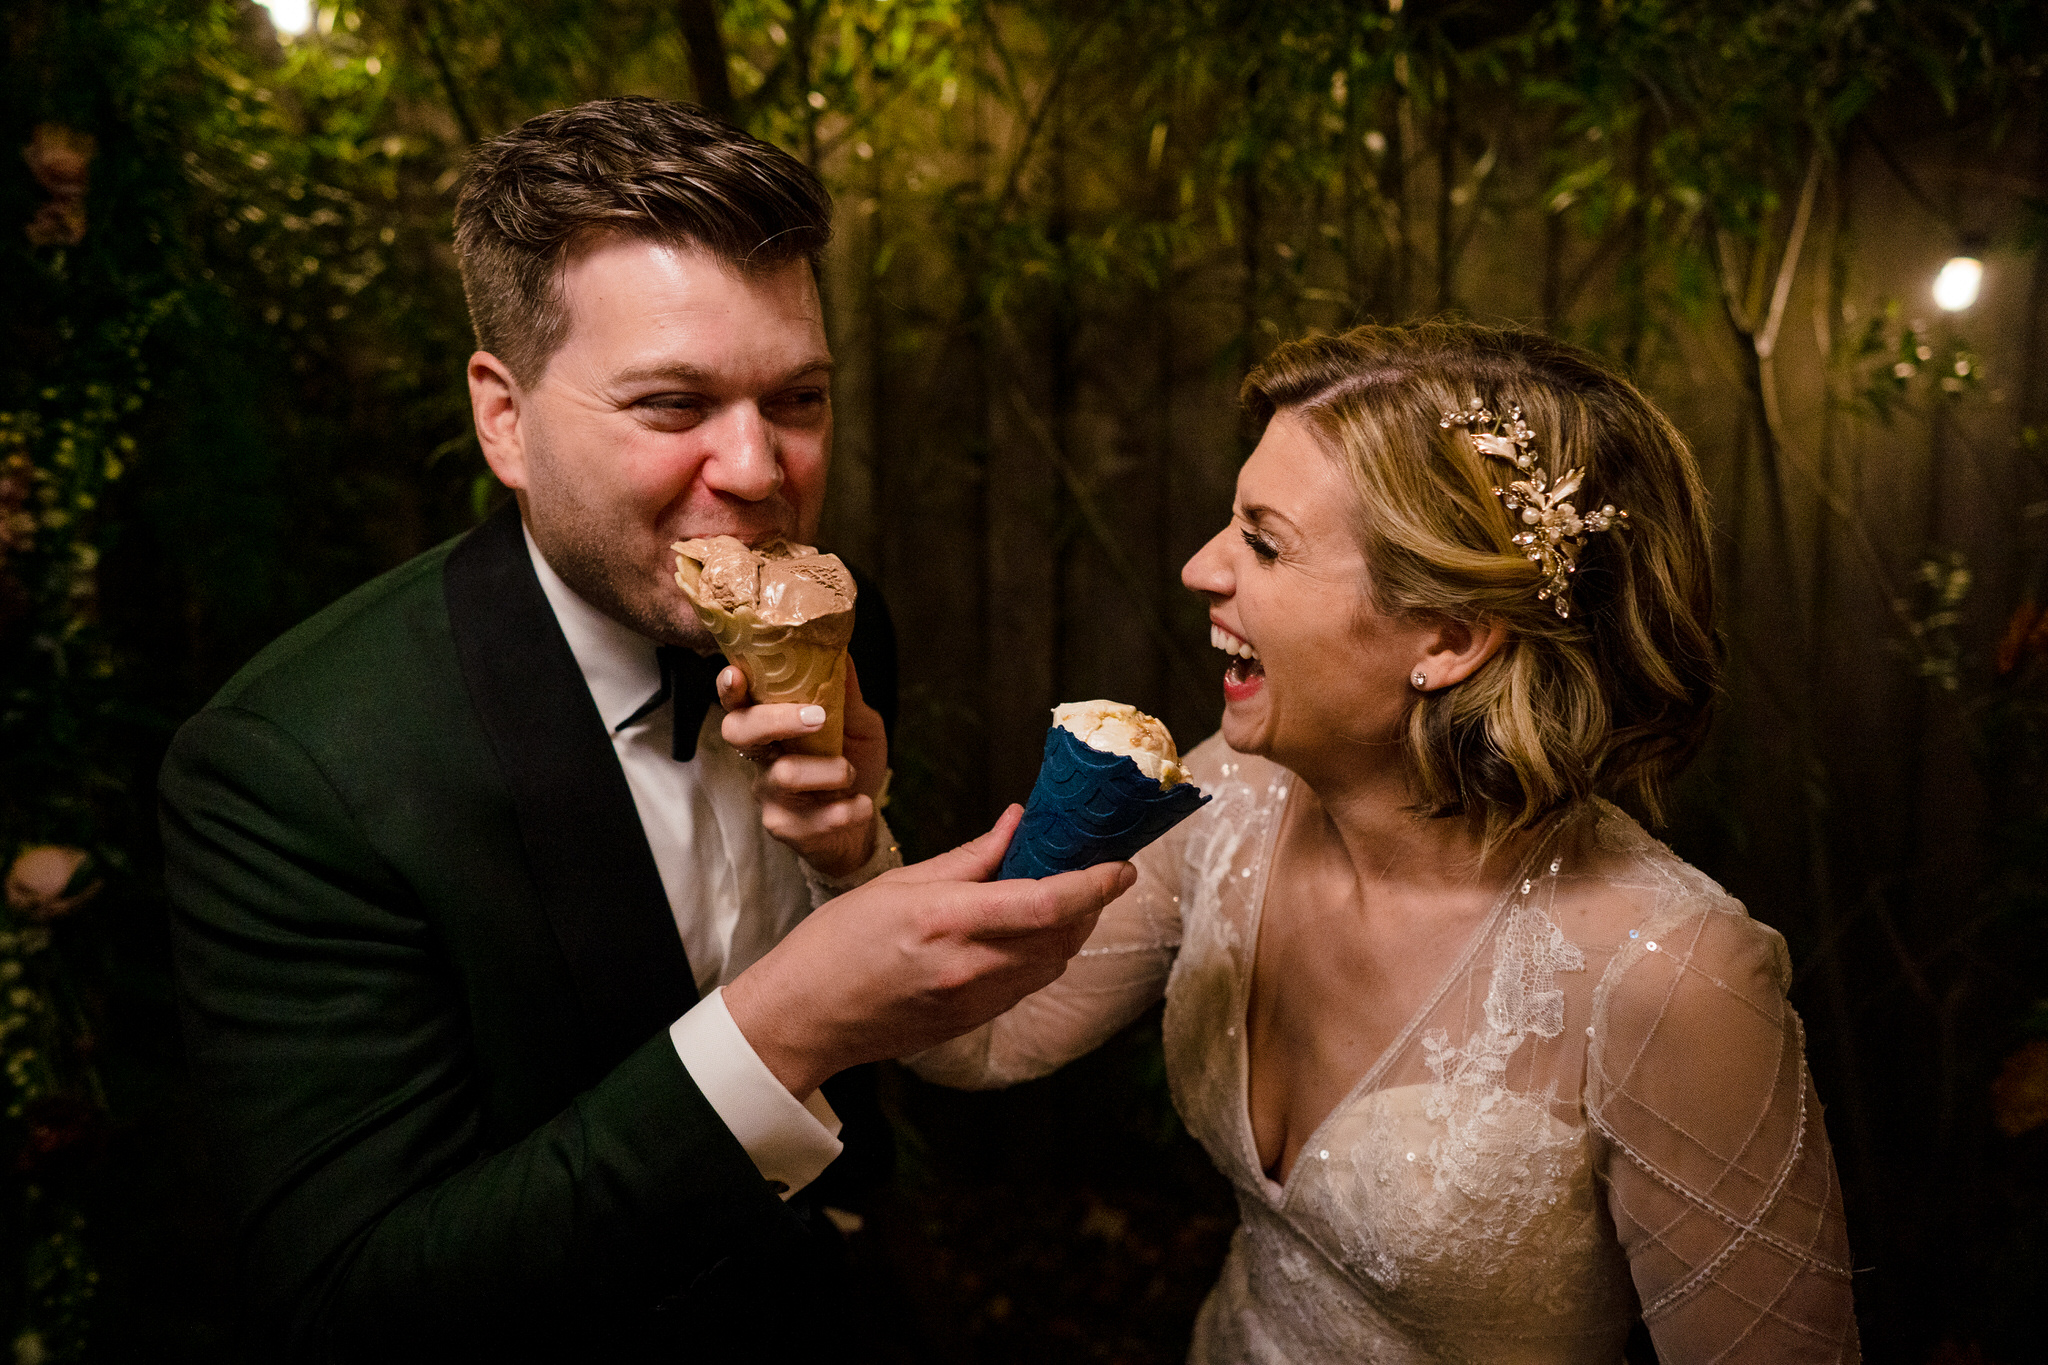 A wedding couple smile and eat ice cream cones.